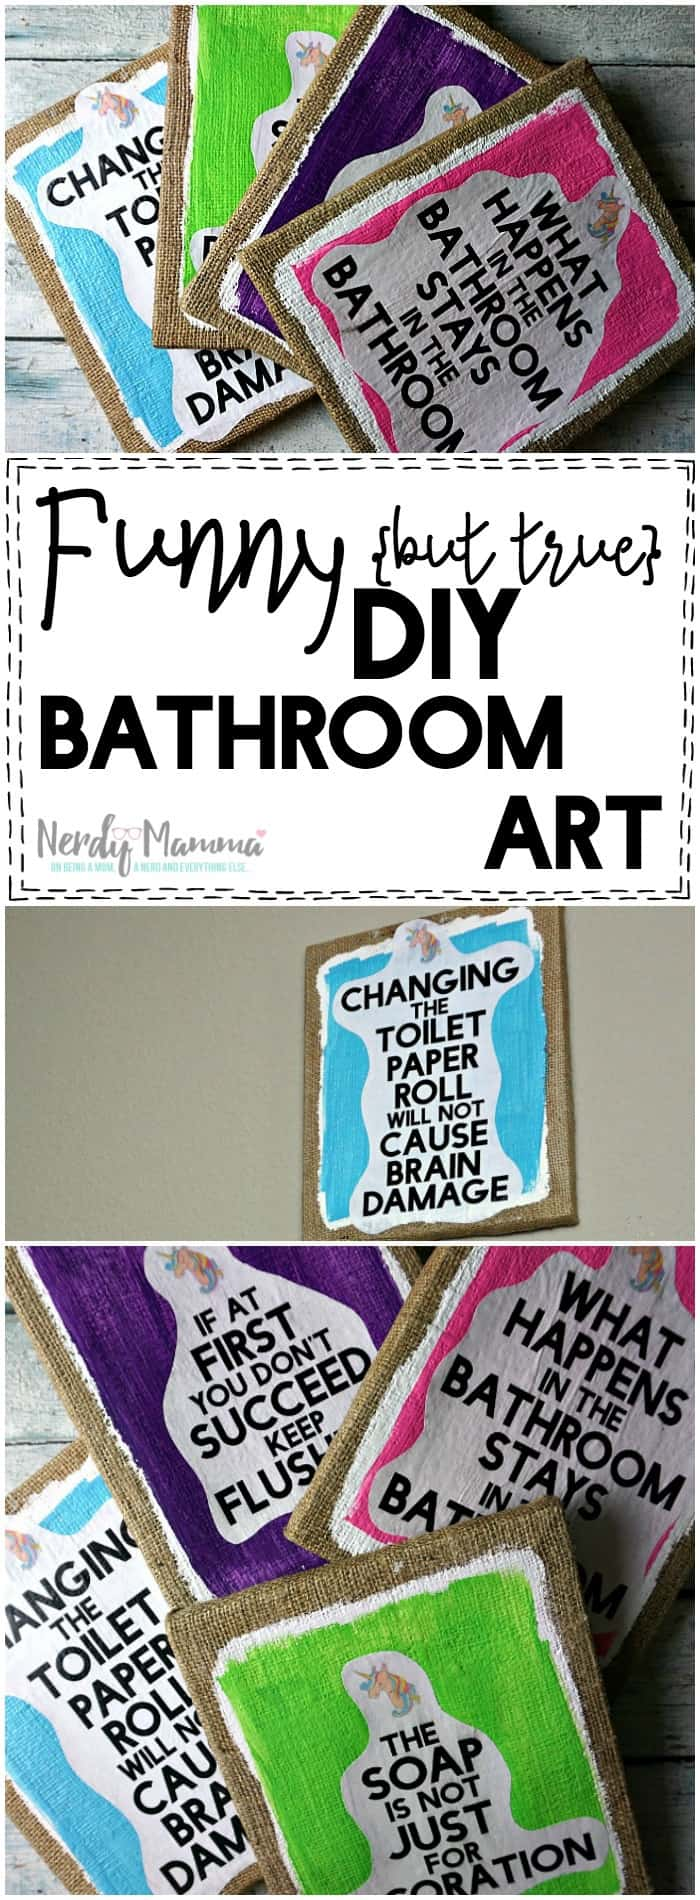 Funny But True DIY Bathroom Art Free Printables SO CUTE LOL